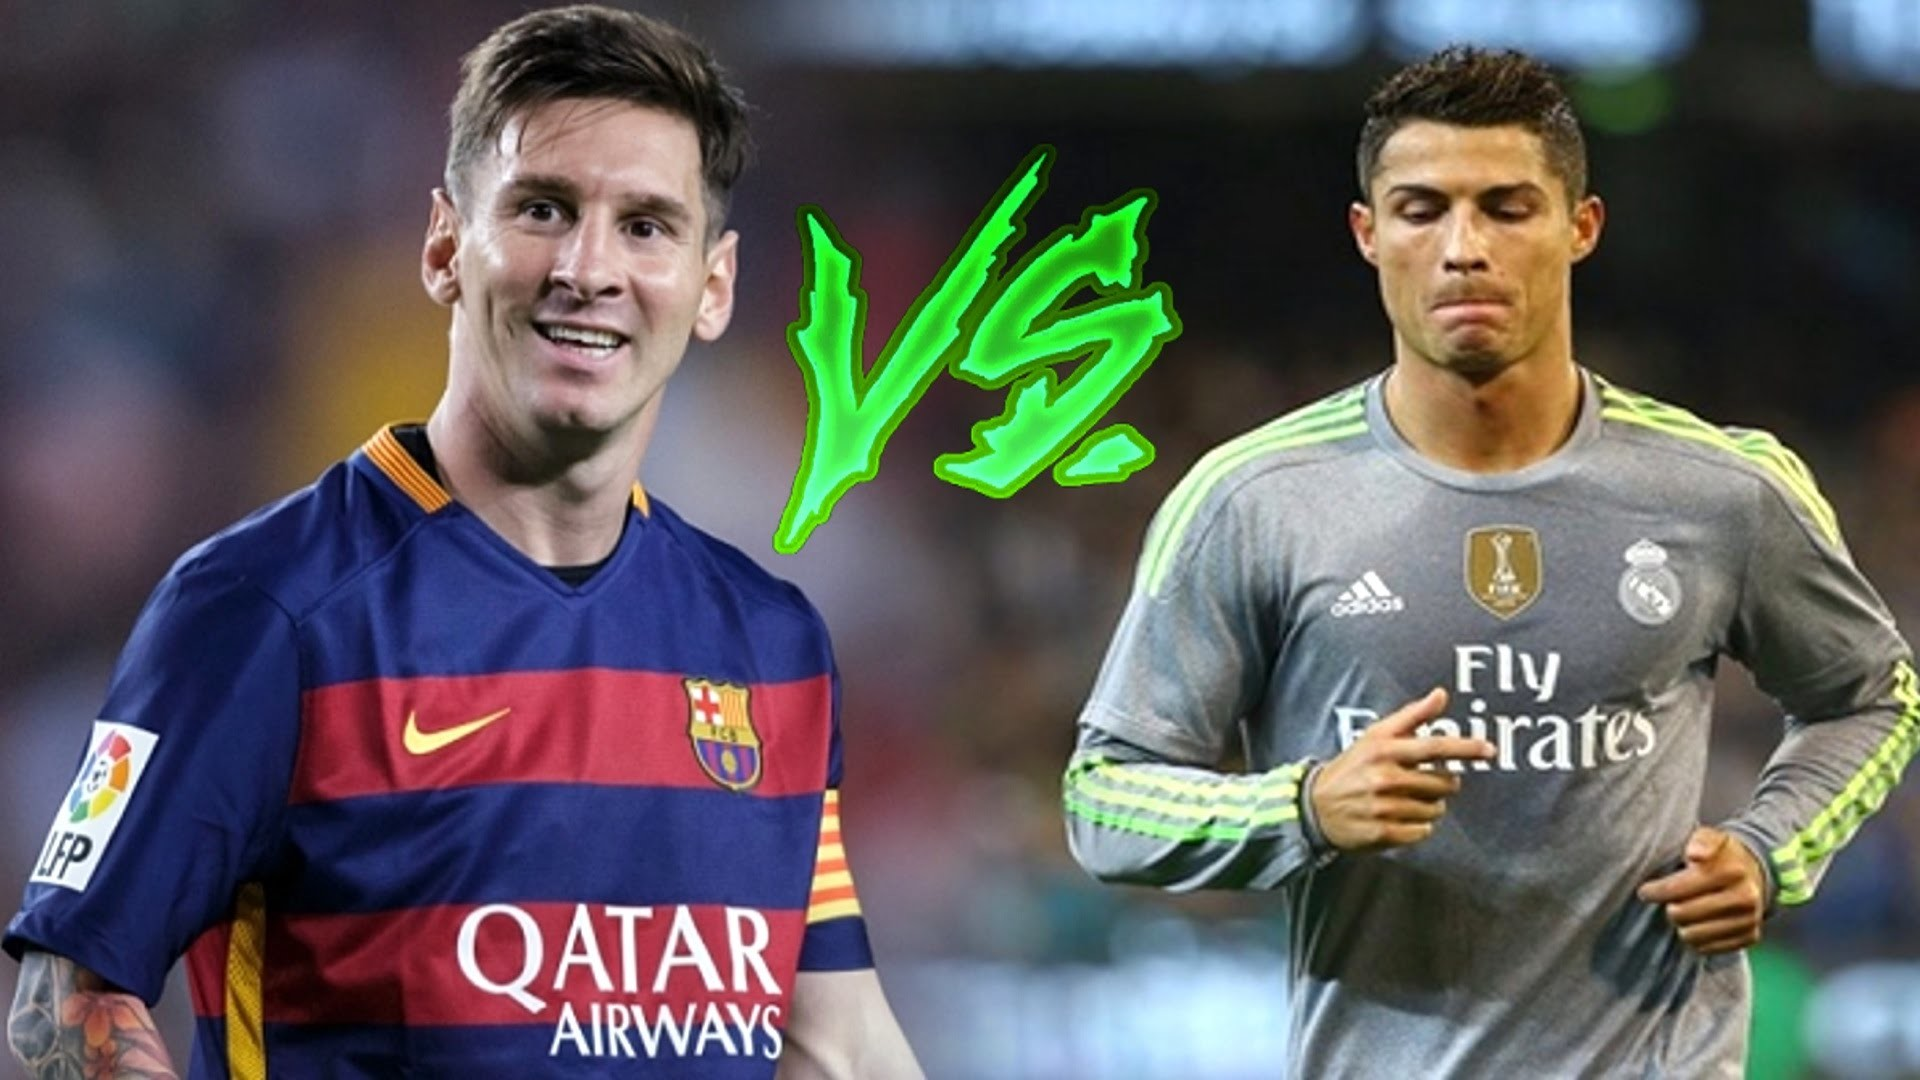 1920x1080 Cristiano Ronaldo vs Lionel Messi: The race to 100 Champions League  goals,Check The Statistics. - Hinnews Sports | Hinnews Sports